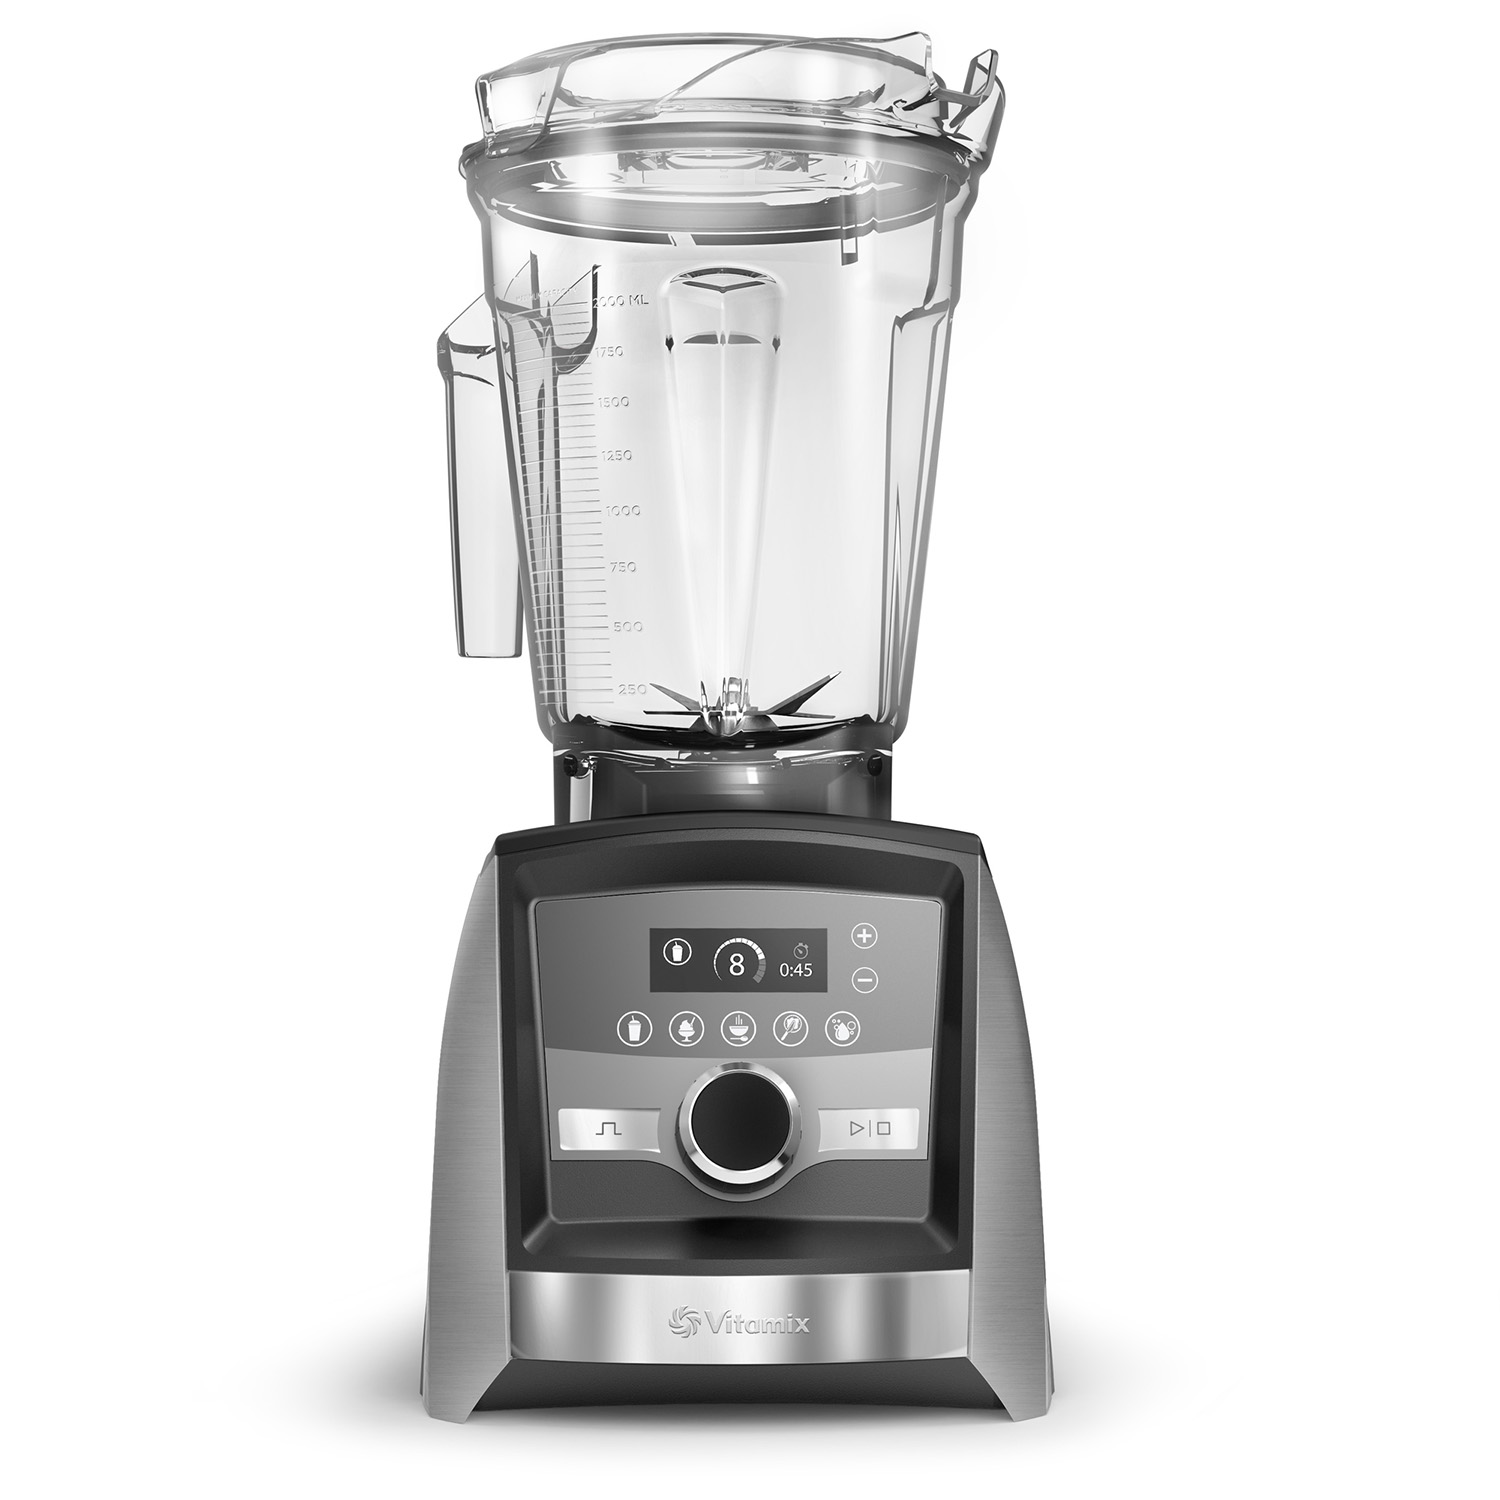 Vitamix blender with touchscreen panel